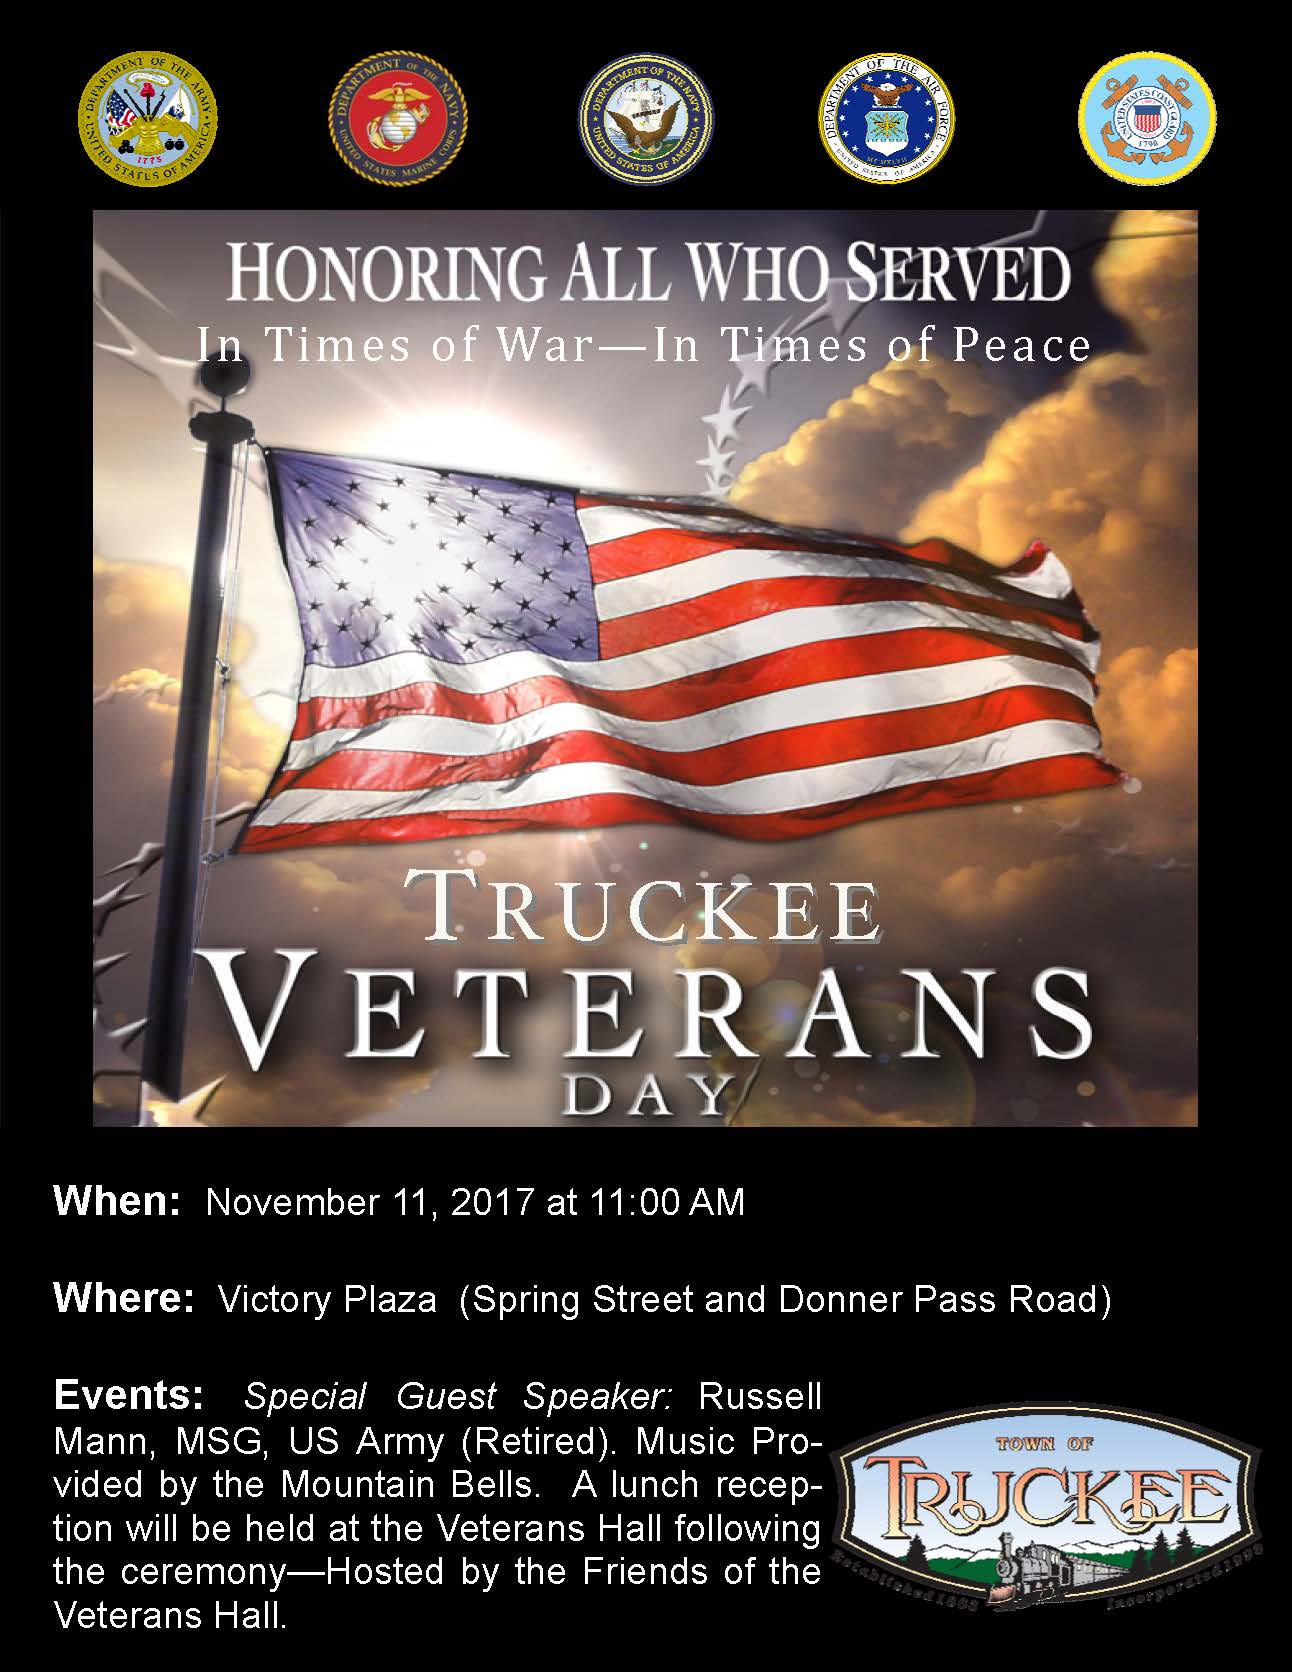 Veterans Days 2017 Poster